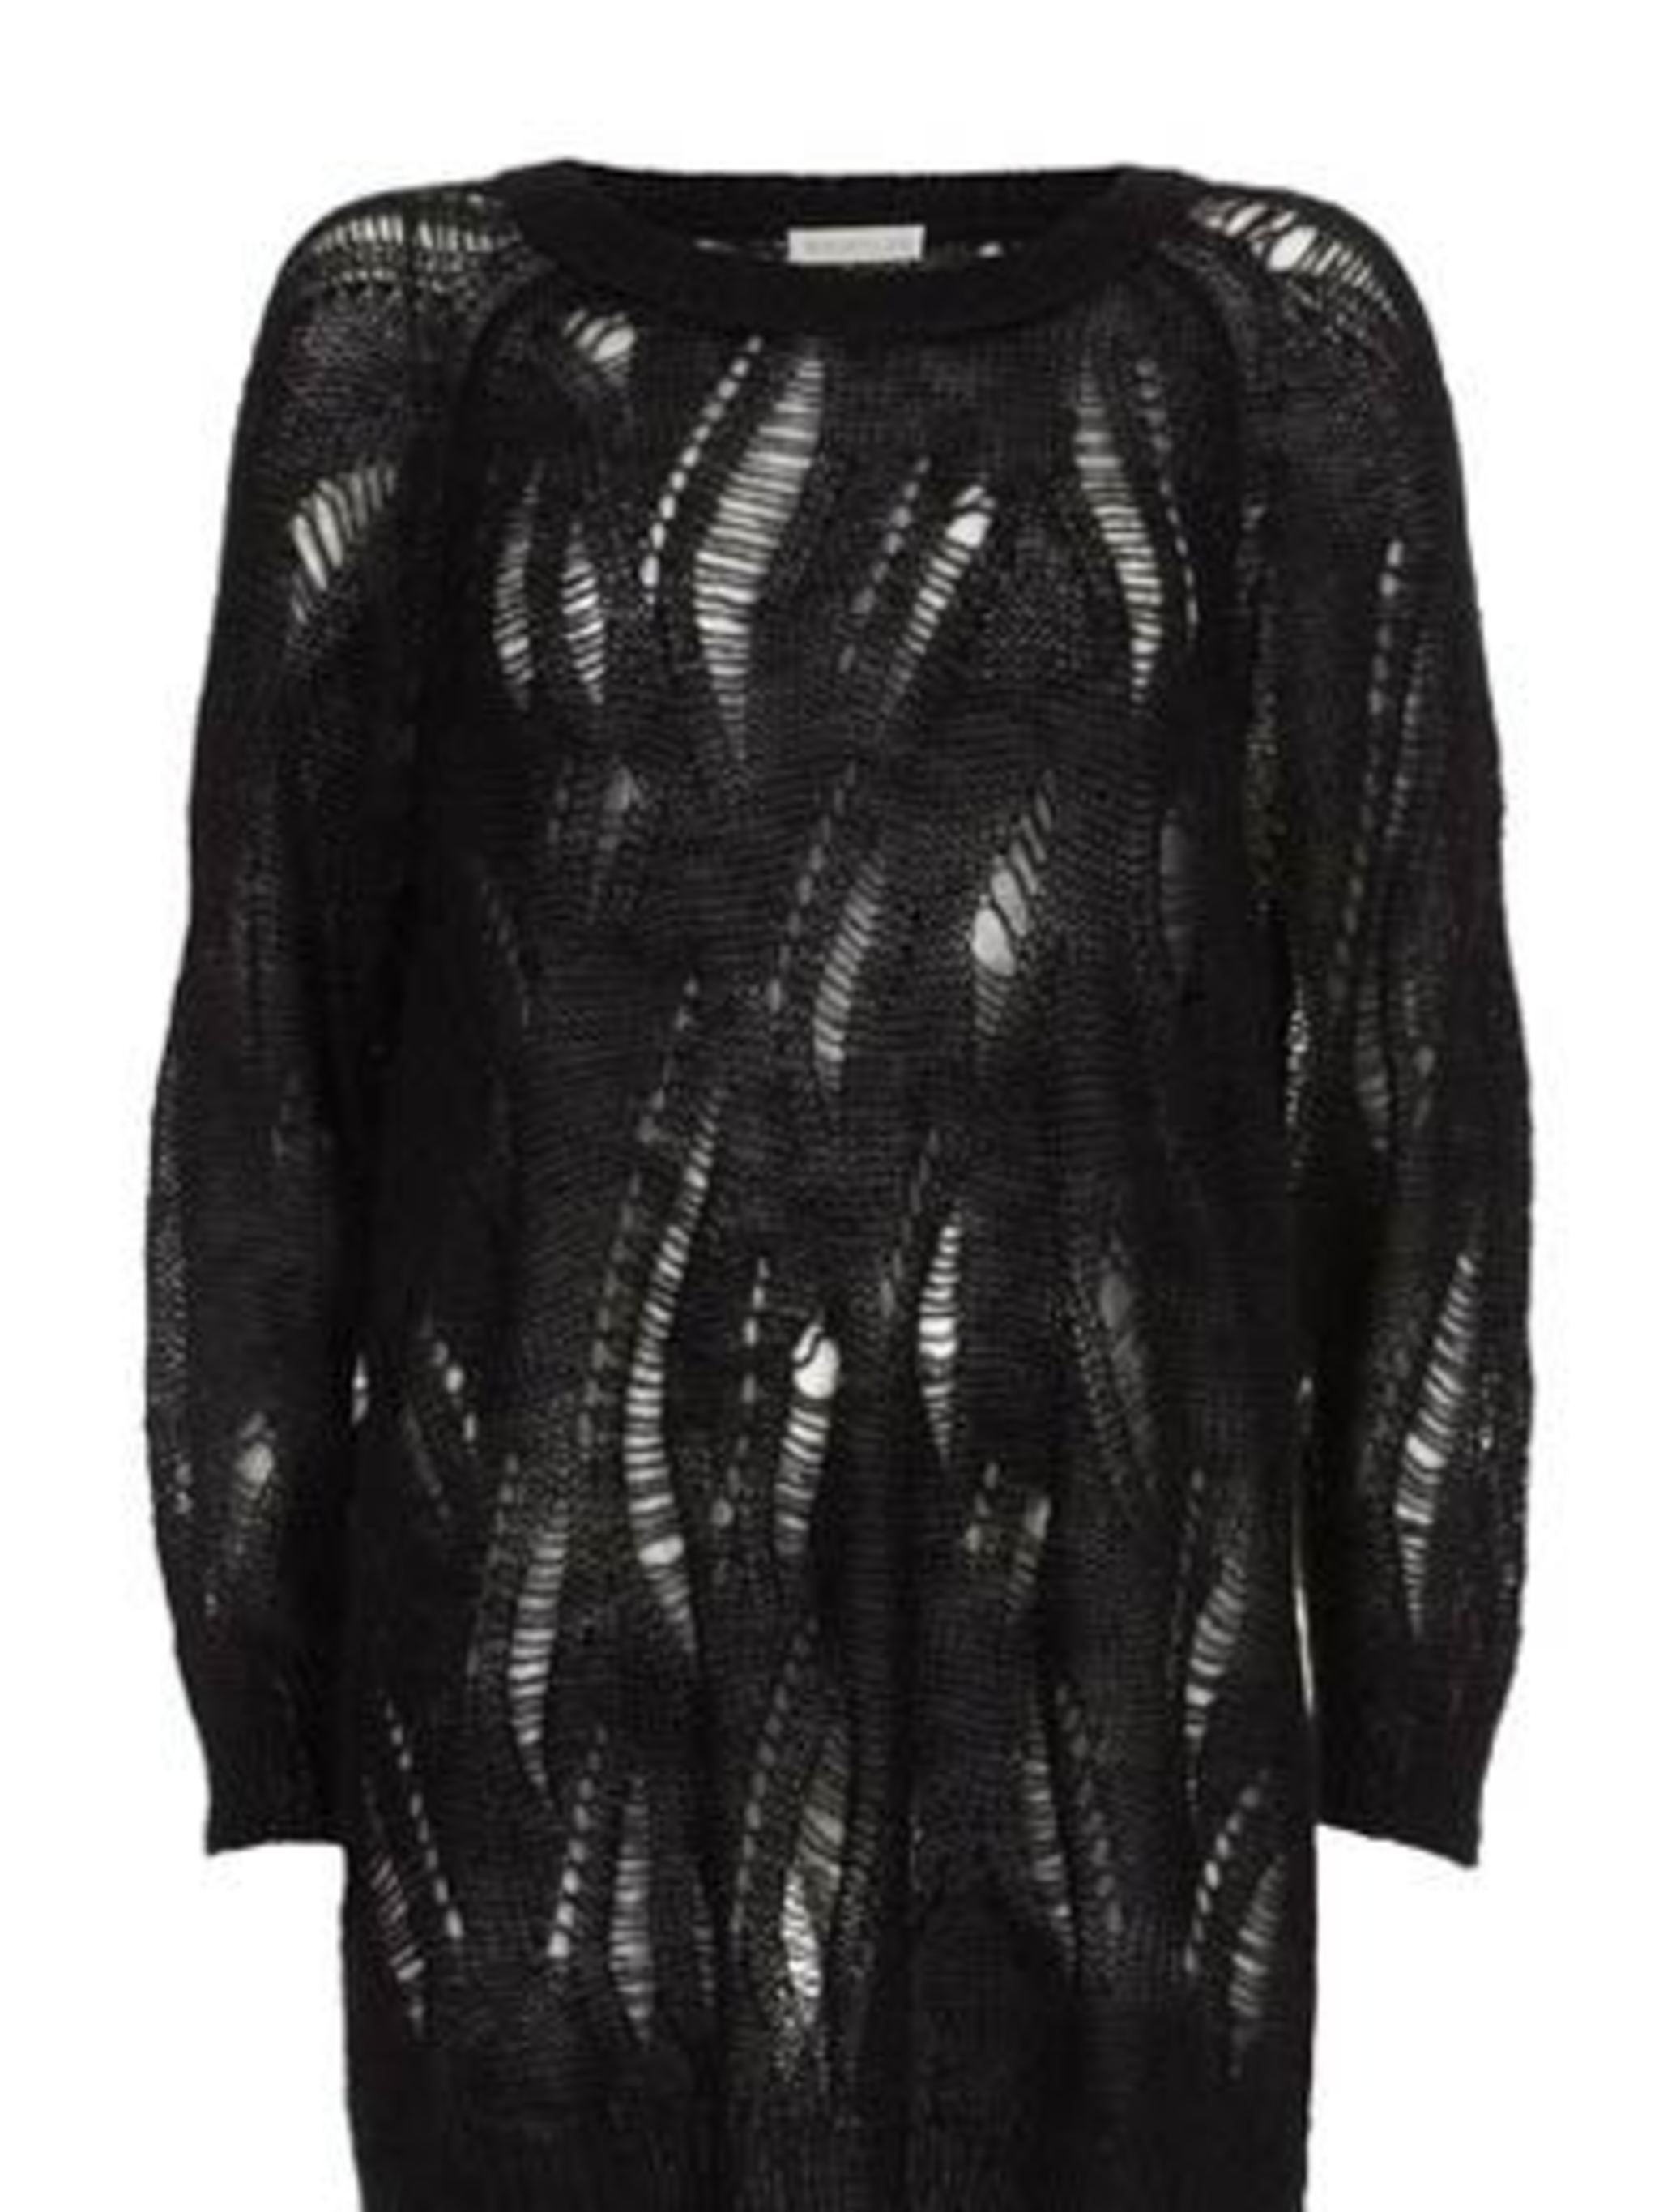 "<p>Jumper, £110 by <a href=""http://www.whistles.co.uk/fcp/product/whistles/newin/Punky-Ladder-Jumper/903000053506"">Whistles</a></p>"